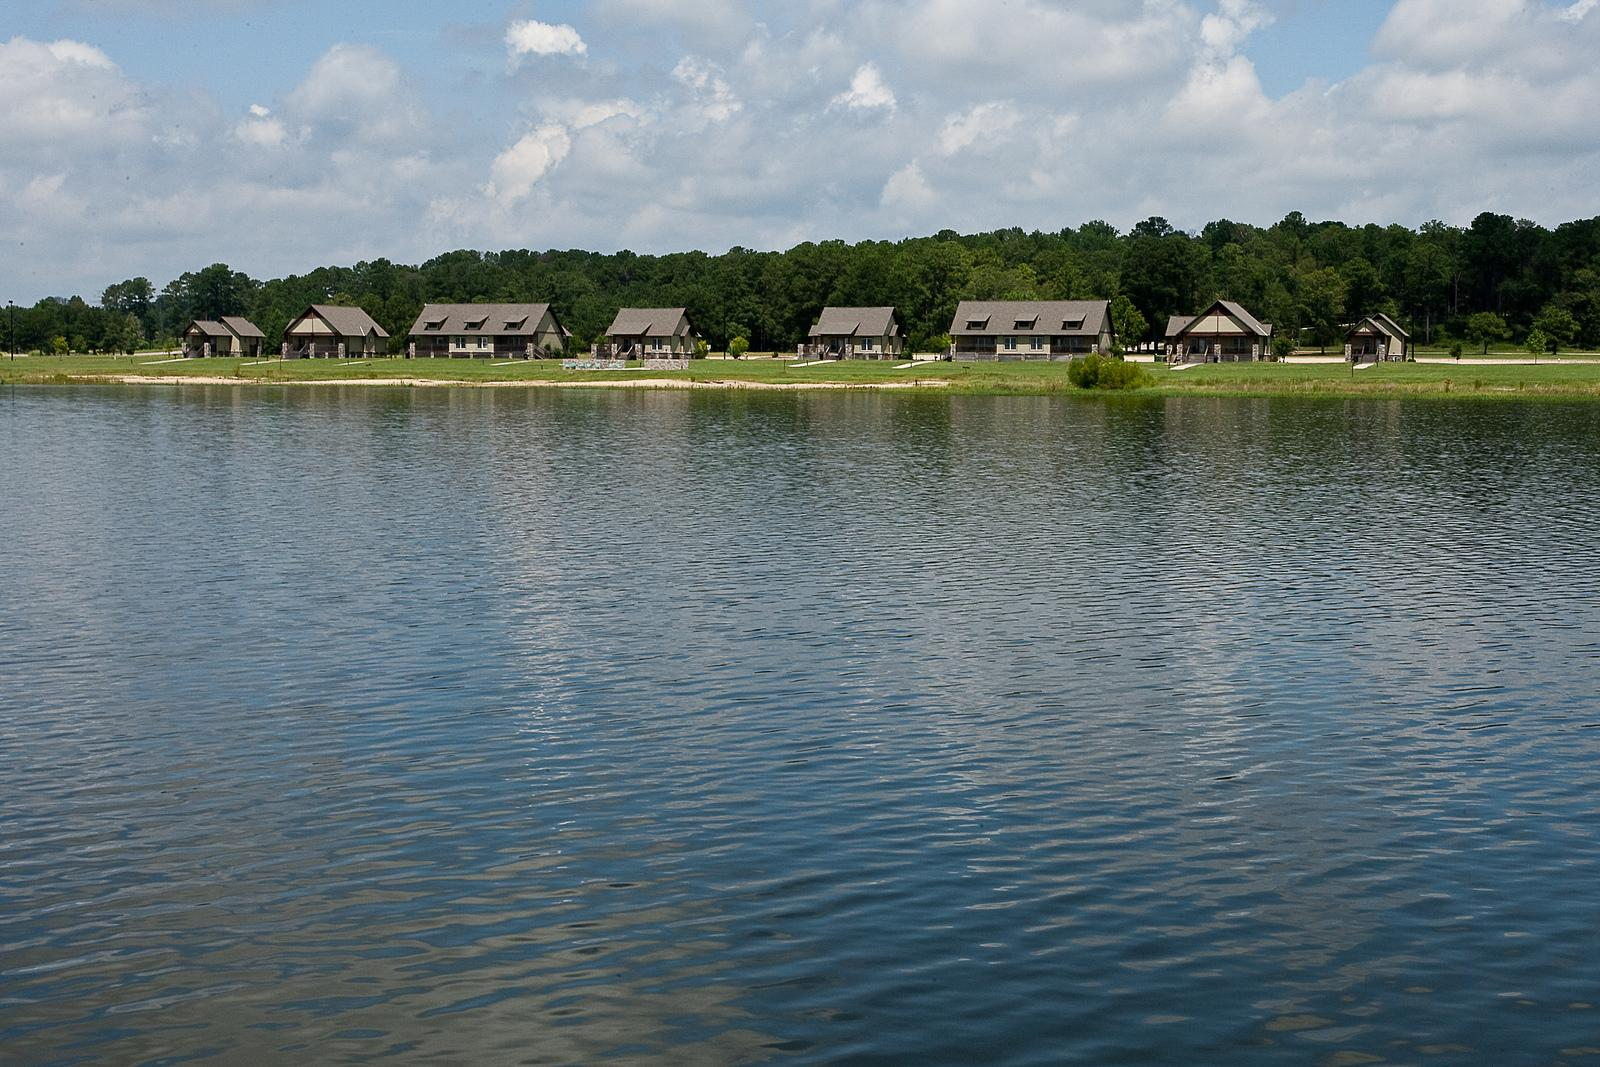 Lakepoint State Park Cottages Across Water